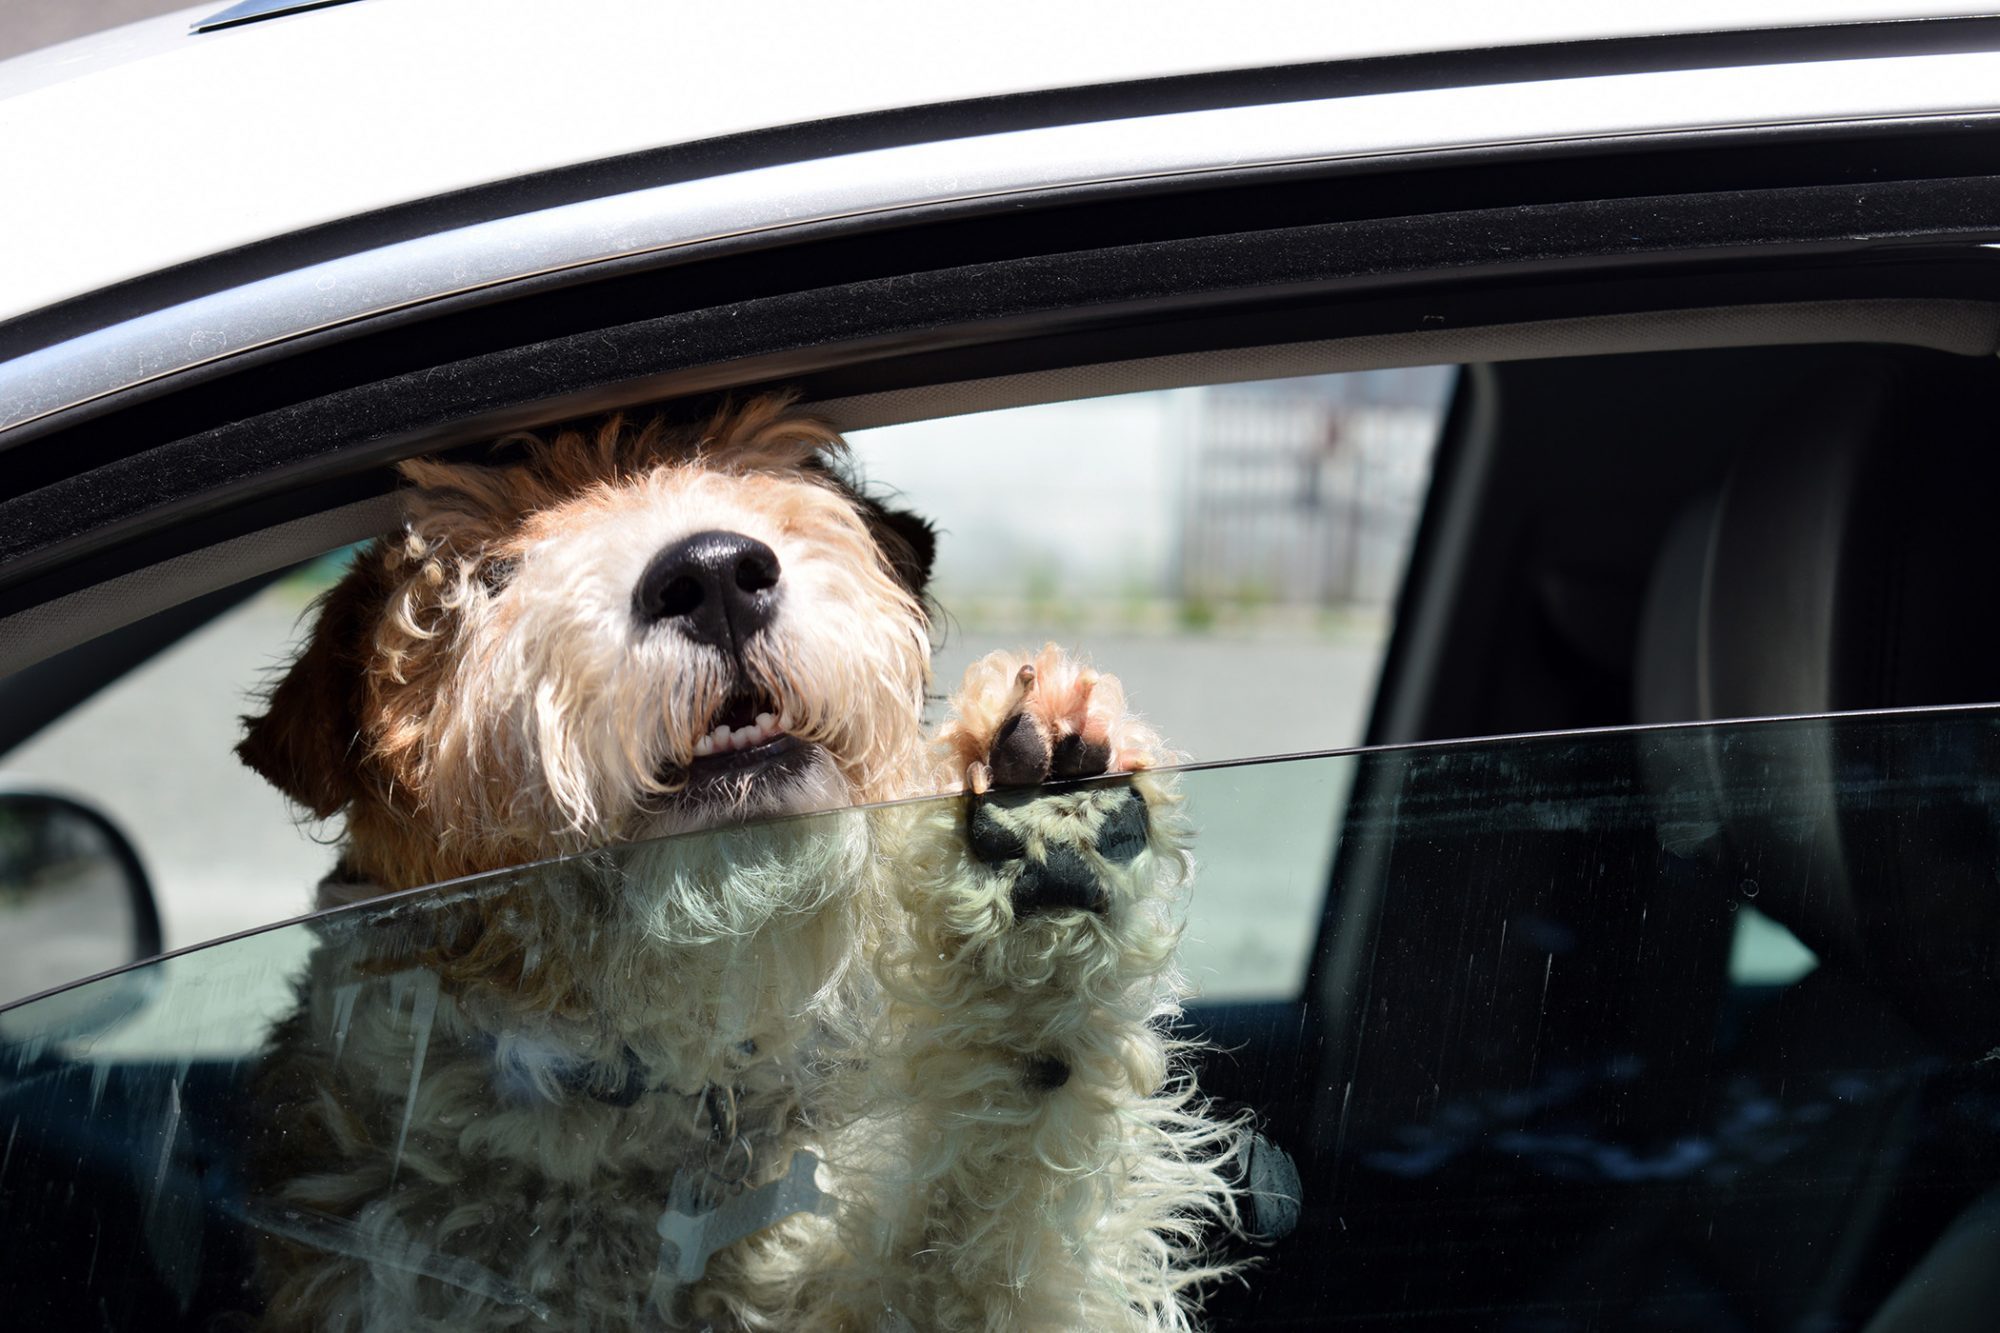 dog in hot car peeking out of the crack in the window